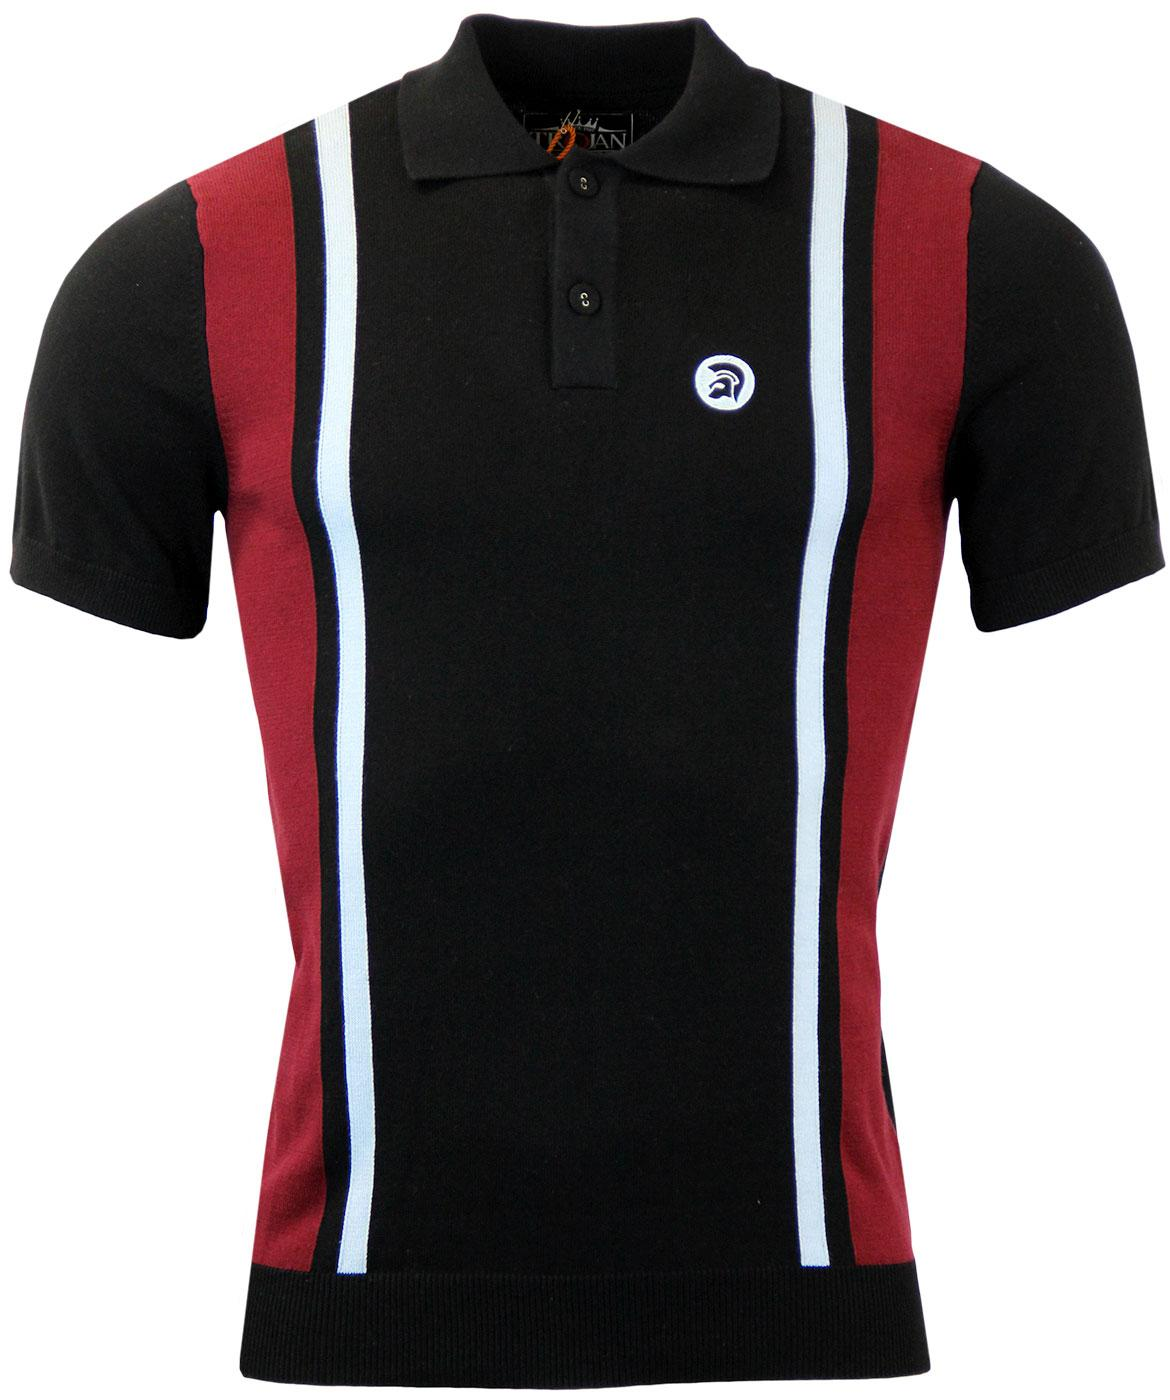 TROJAN RECORDS Retro Mod Block Knitted Polo B